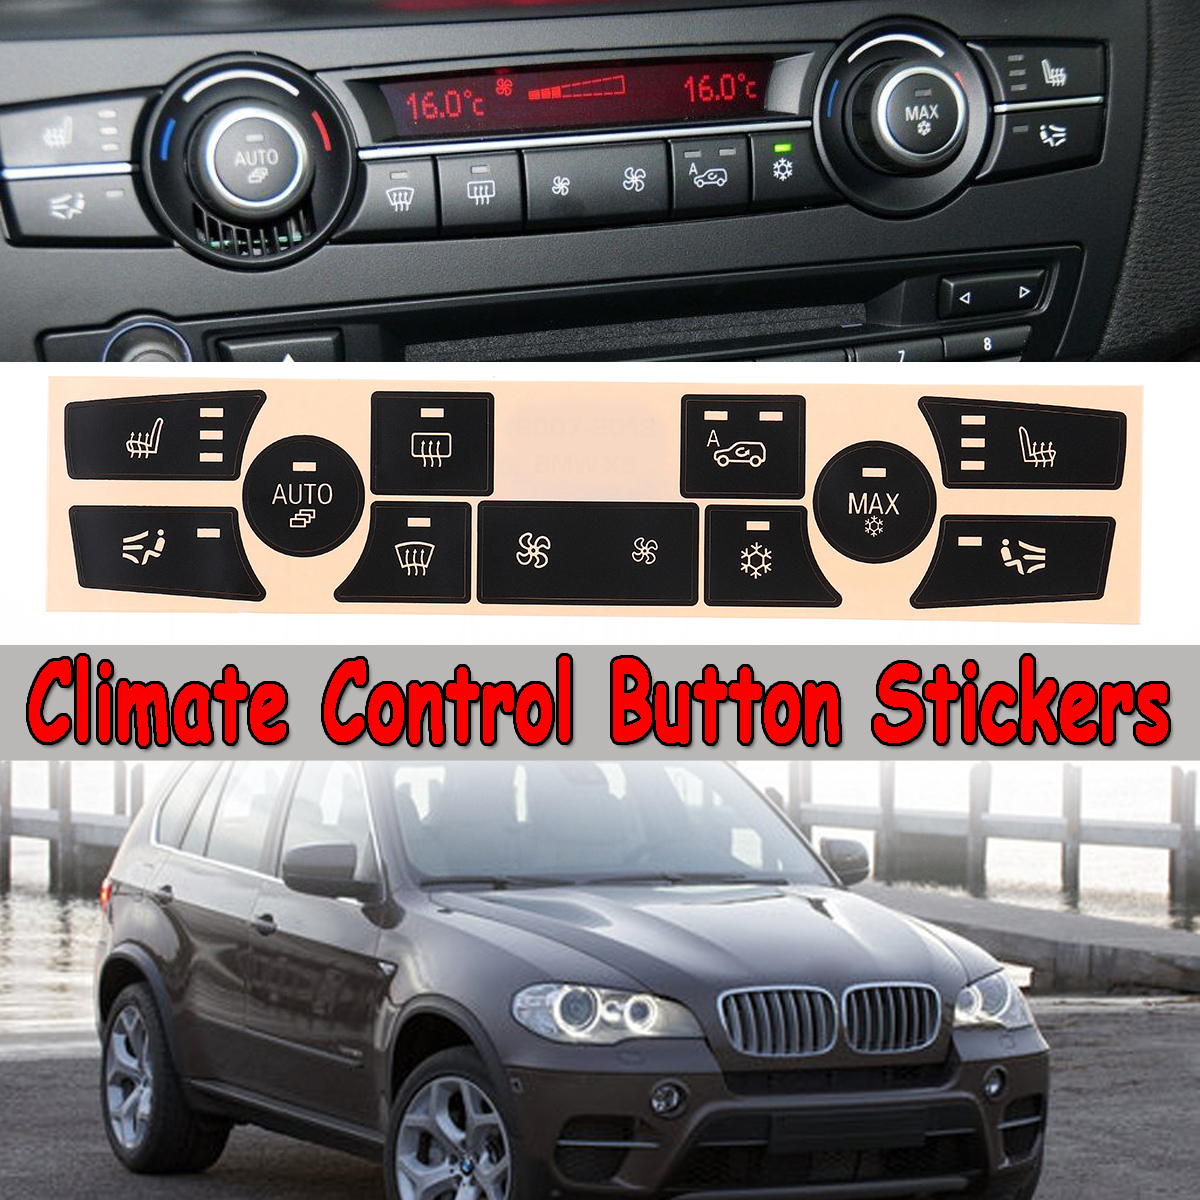 Details About For 2007 2013 Bmw X5 Replacement Ac Climate Dash Control Button Stickers